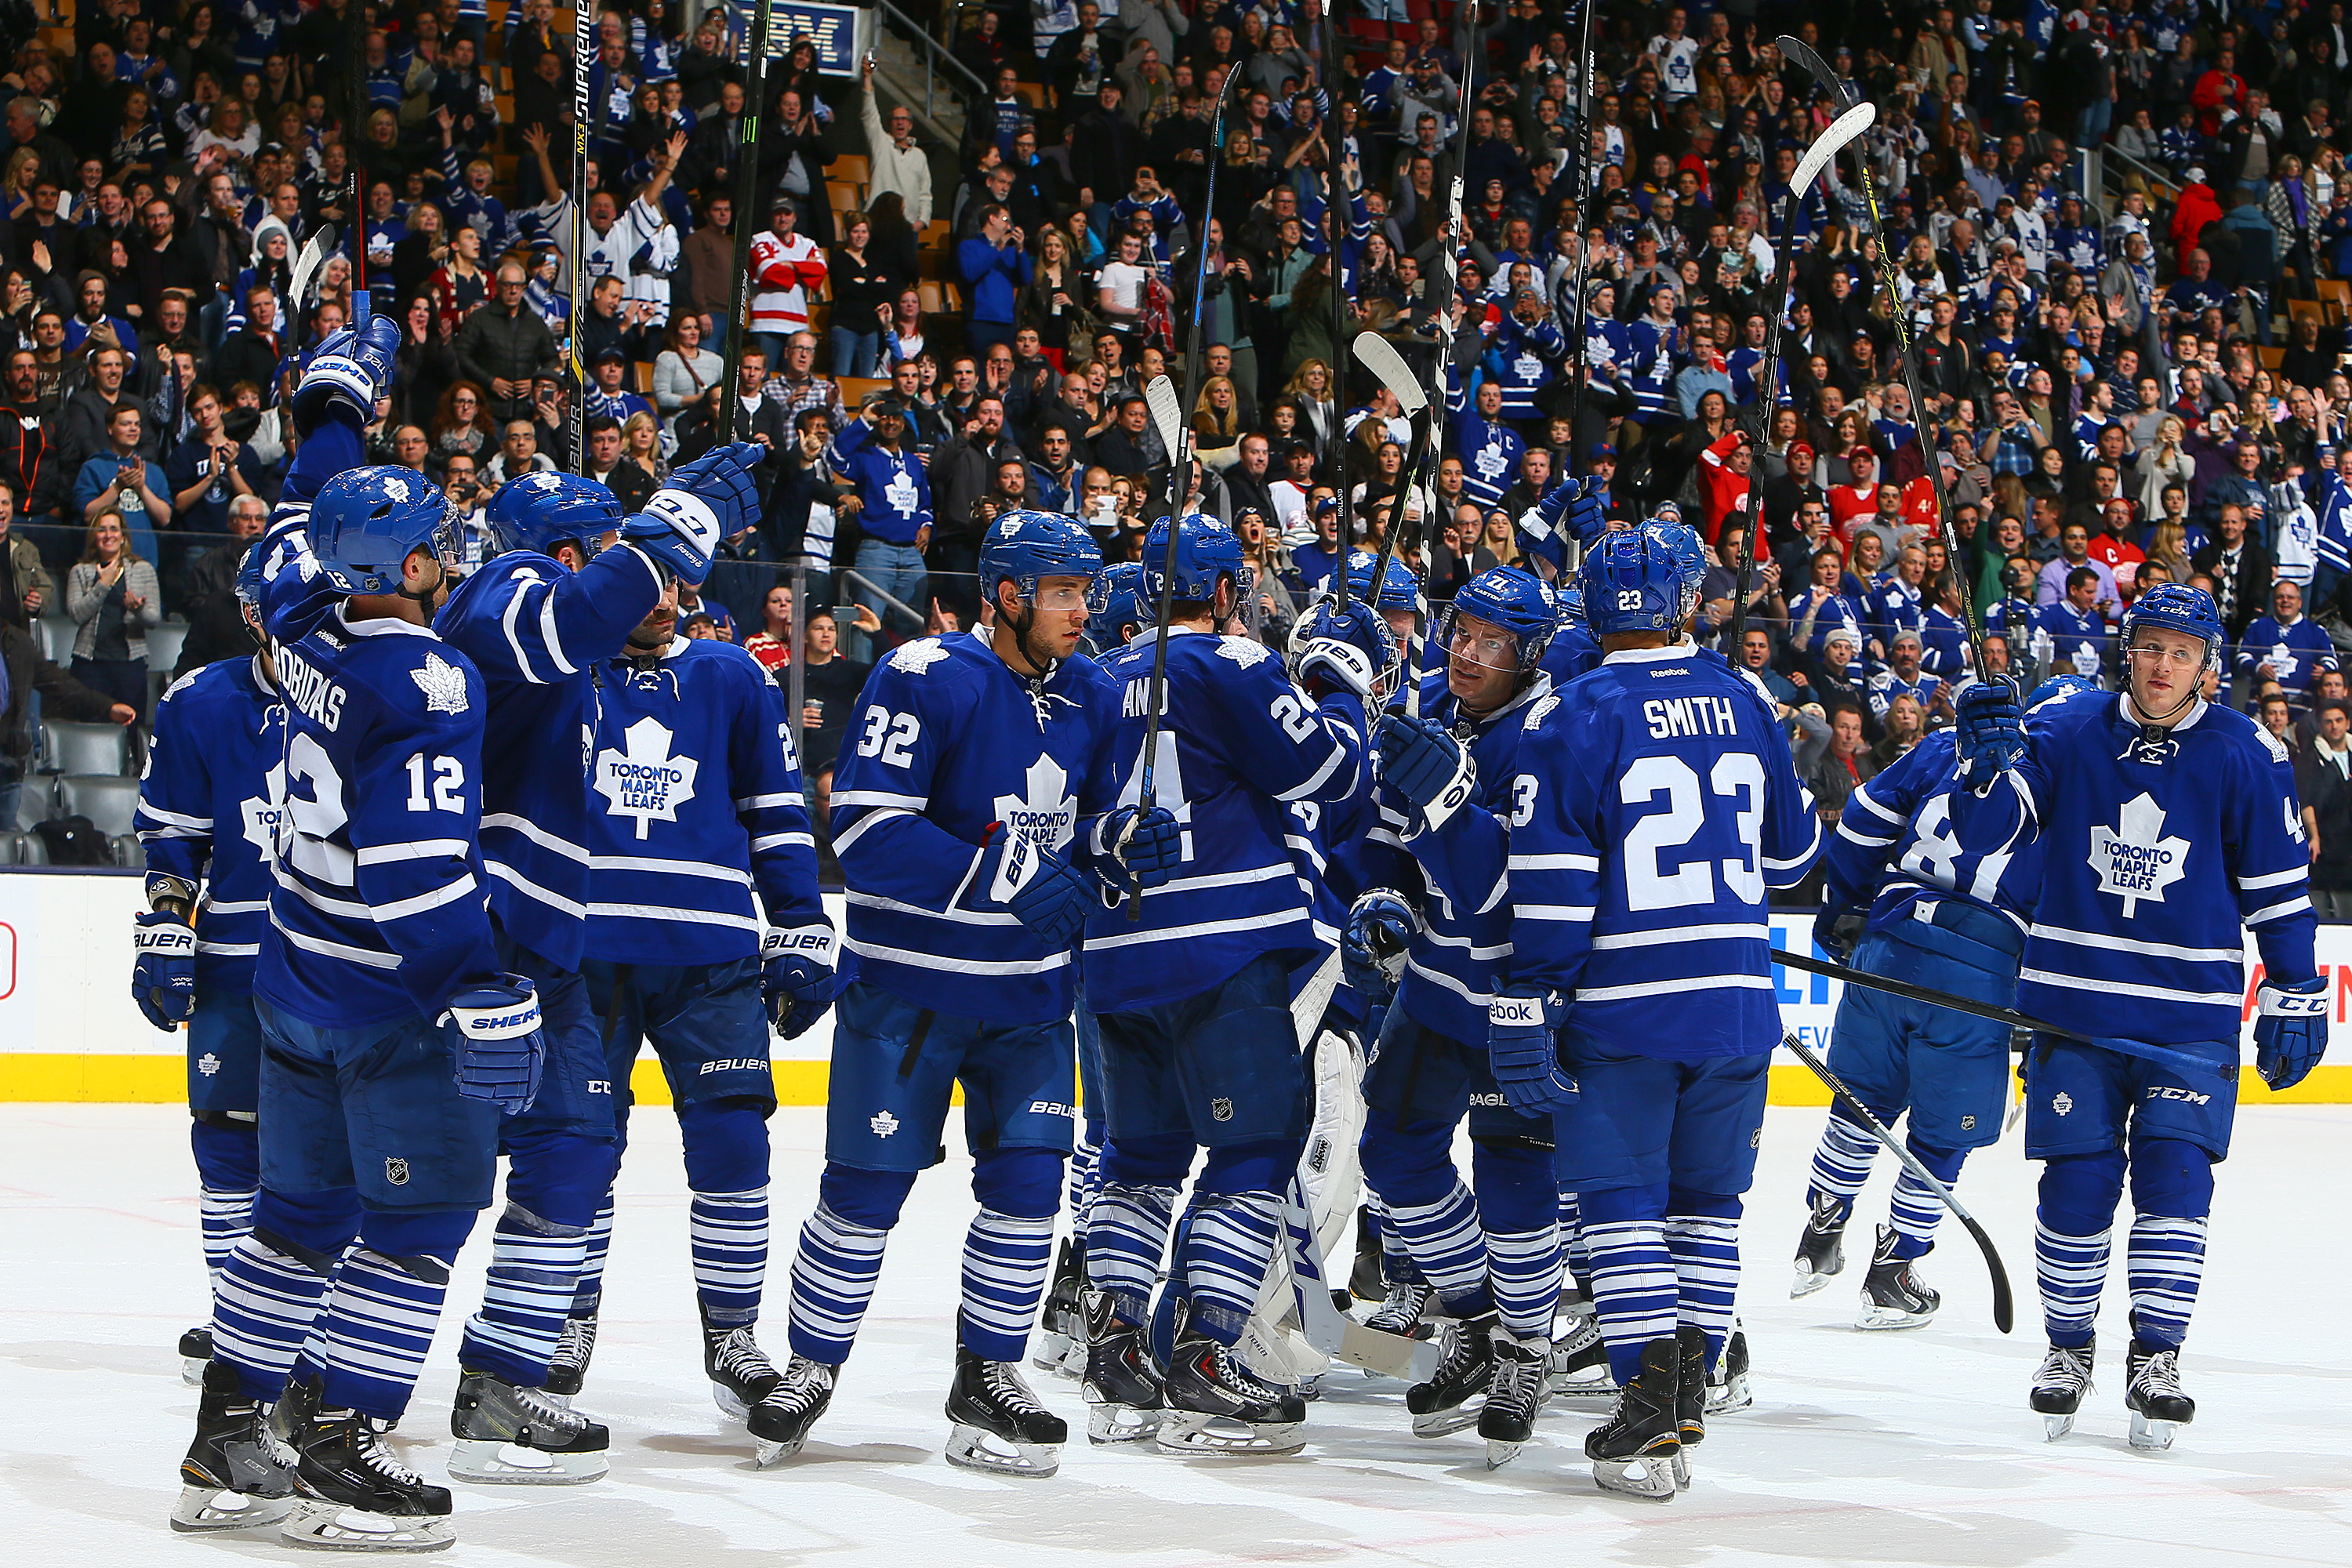 The Toronto Maple Leafs salute the fans after beating the Detroit Red Wings during an NHL game at the Air Canada Centre in Toronto on Nov. 22, 2014. NHLI/Getty Images/Graig Abel